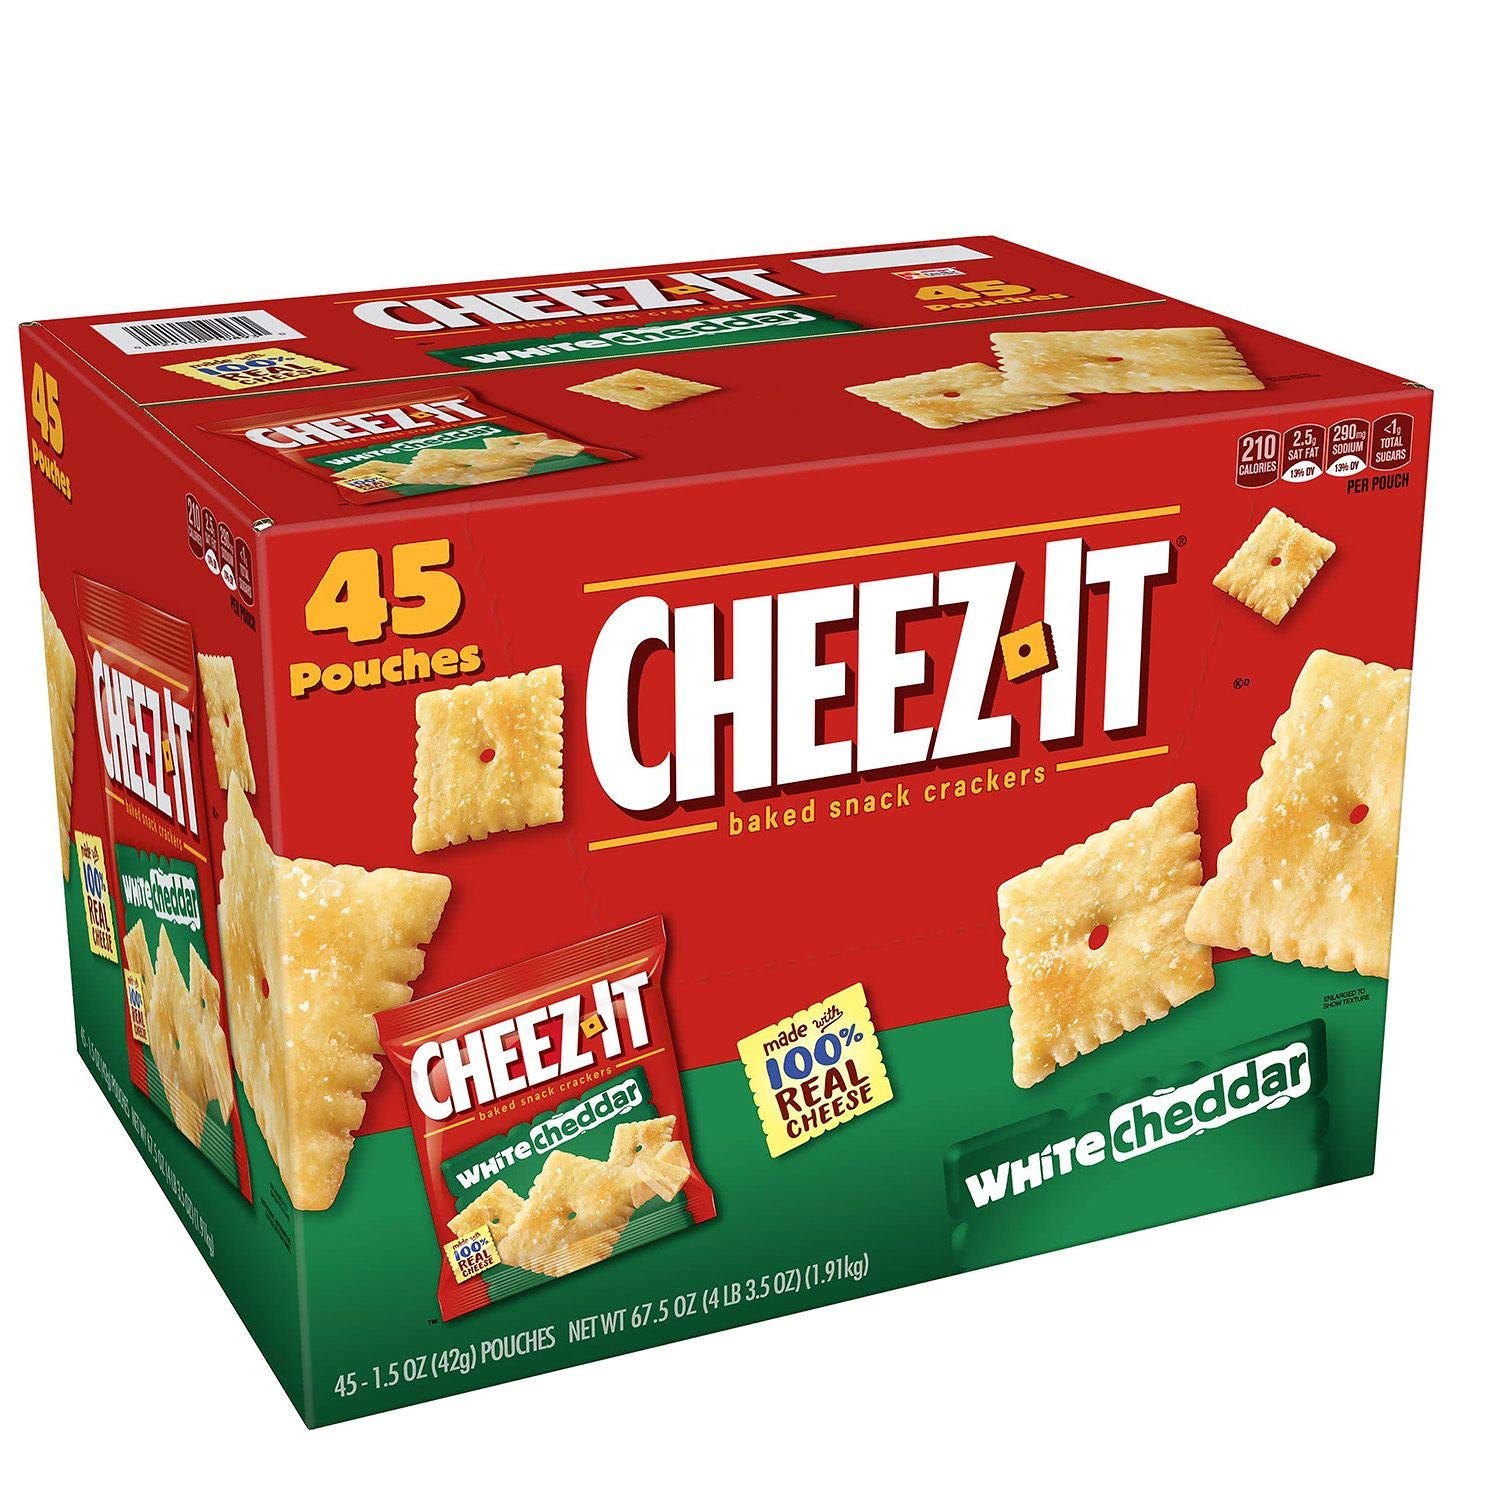 Cheez-It White Cheddar Snack Packs 1.5 oz, 45 ct. (pack of 4) A1